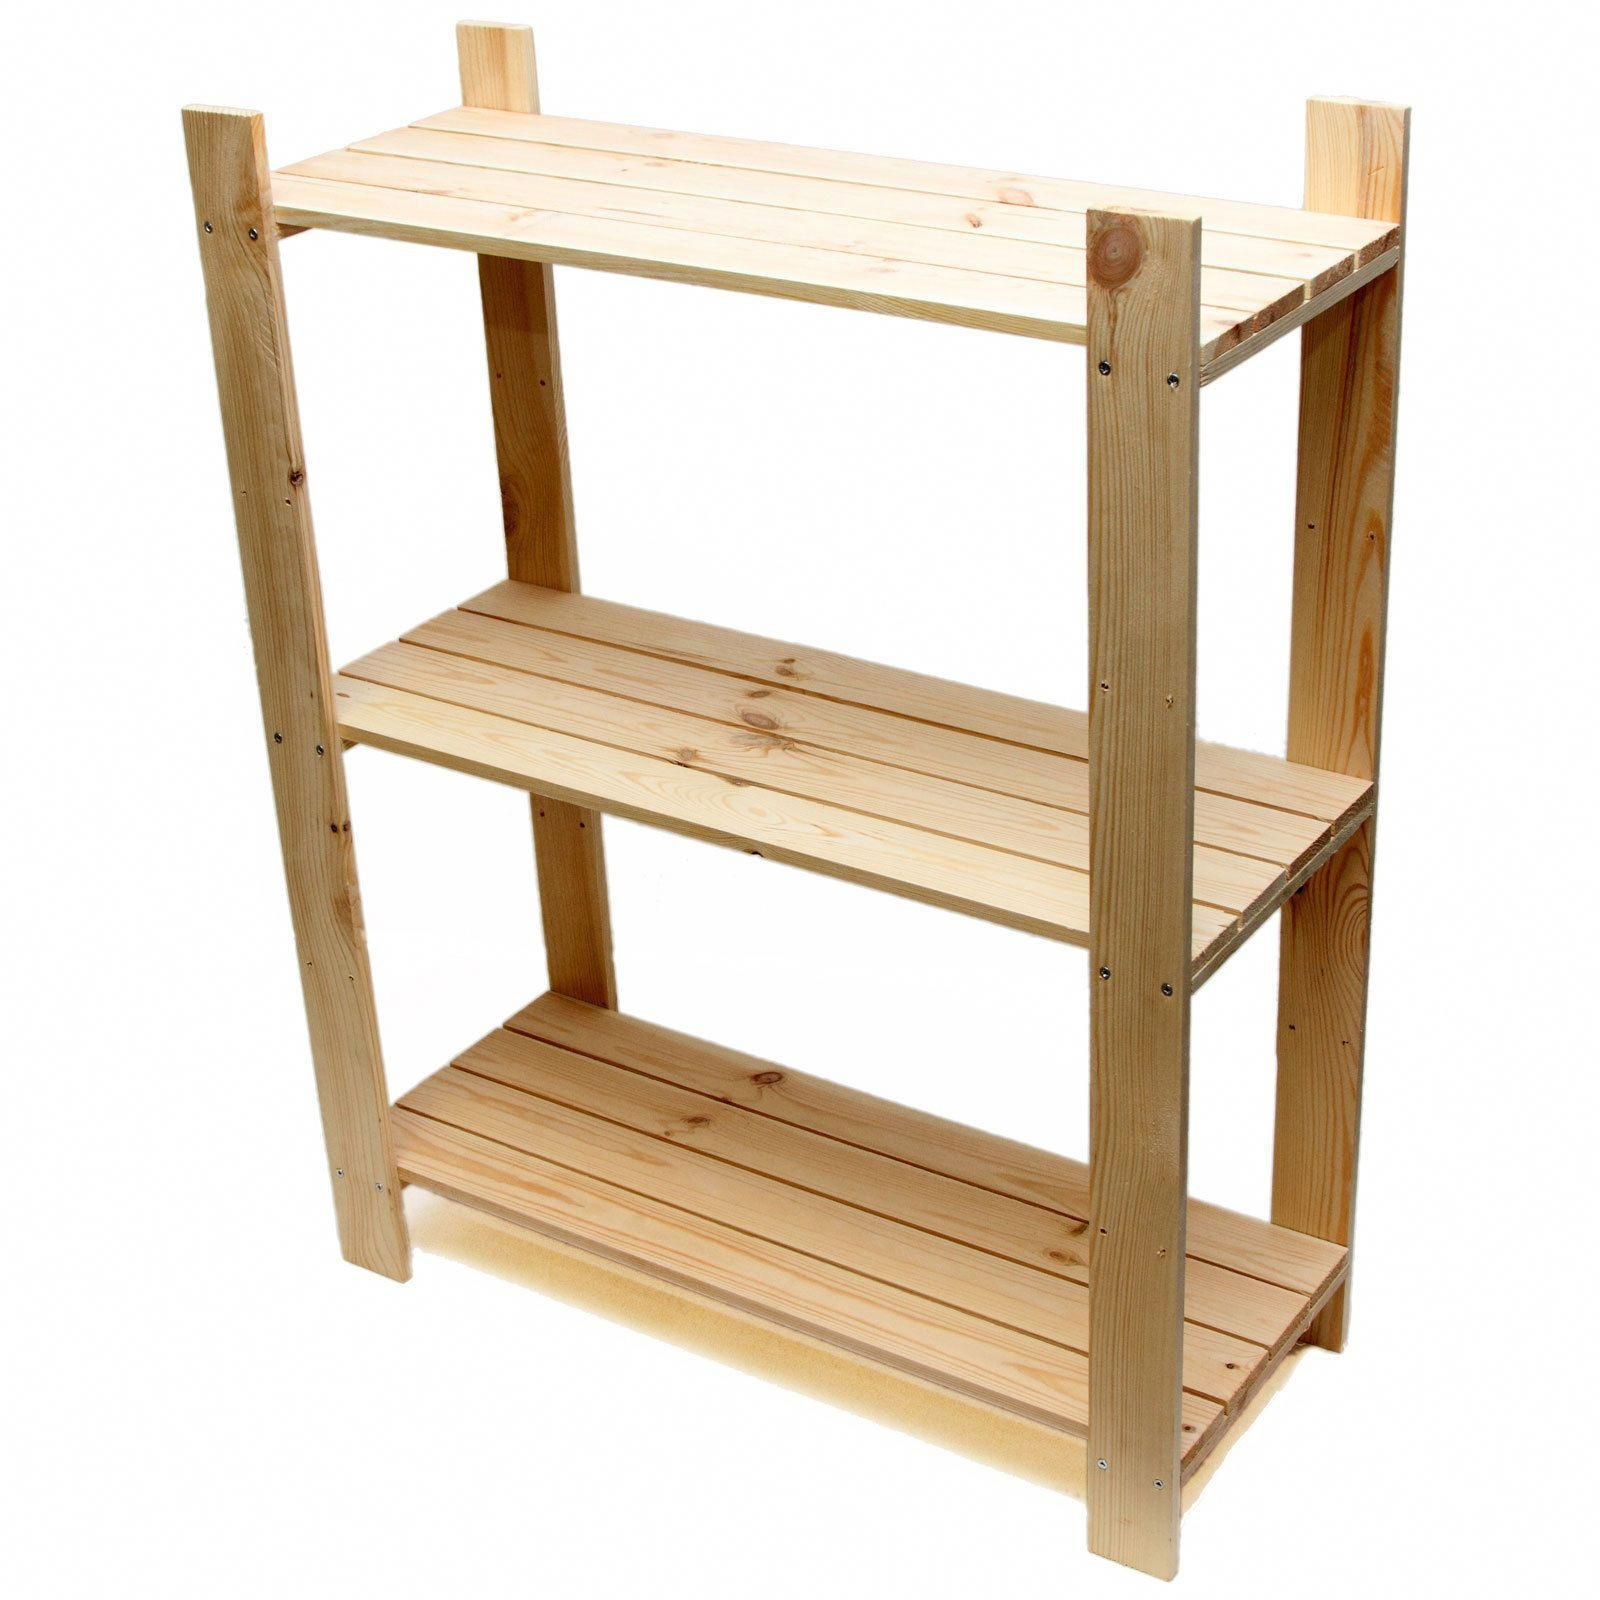 Fine Shelves Shelf Unit Pine Shelves With 3 Wooden Home Interior And Landscaping Oversignezvosmurscom